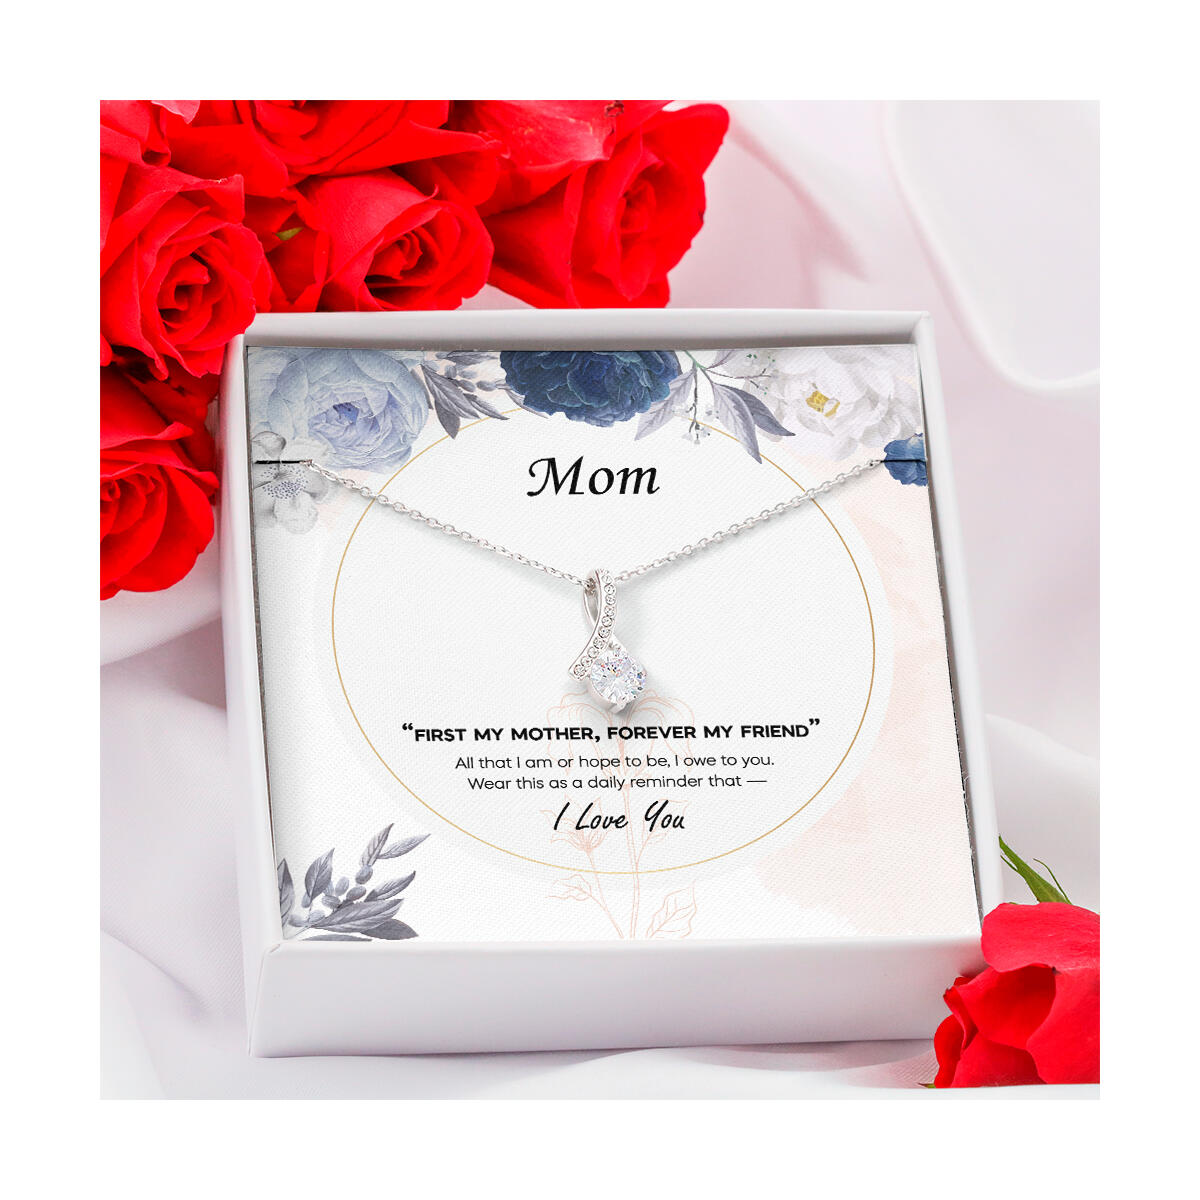 Mom You Are Forever My Friend Gift, FROM USA